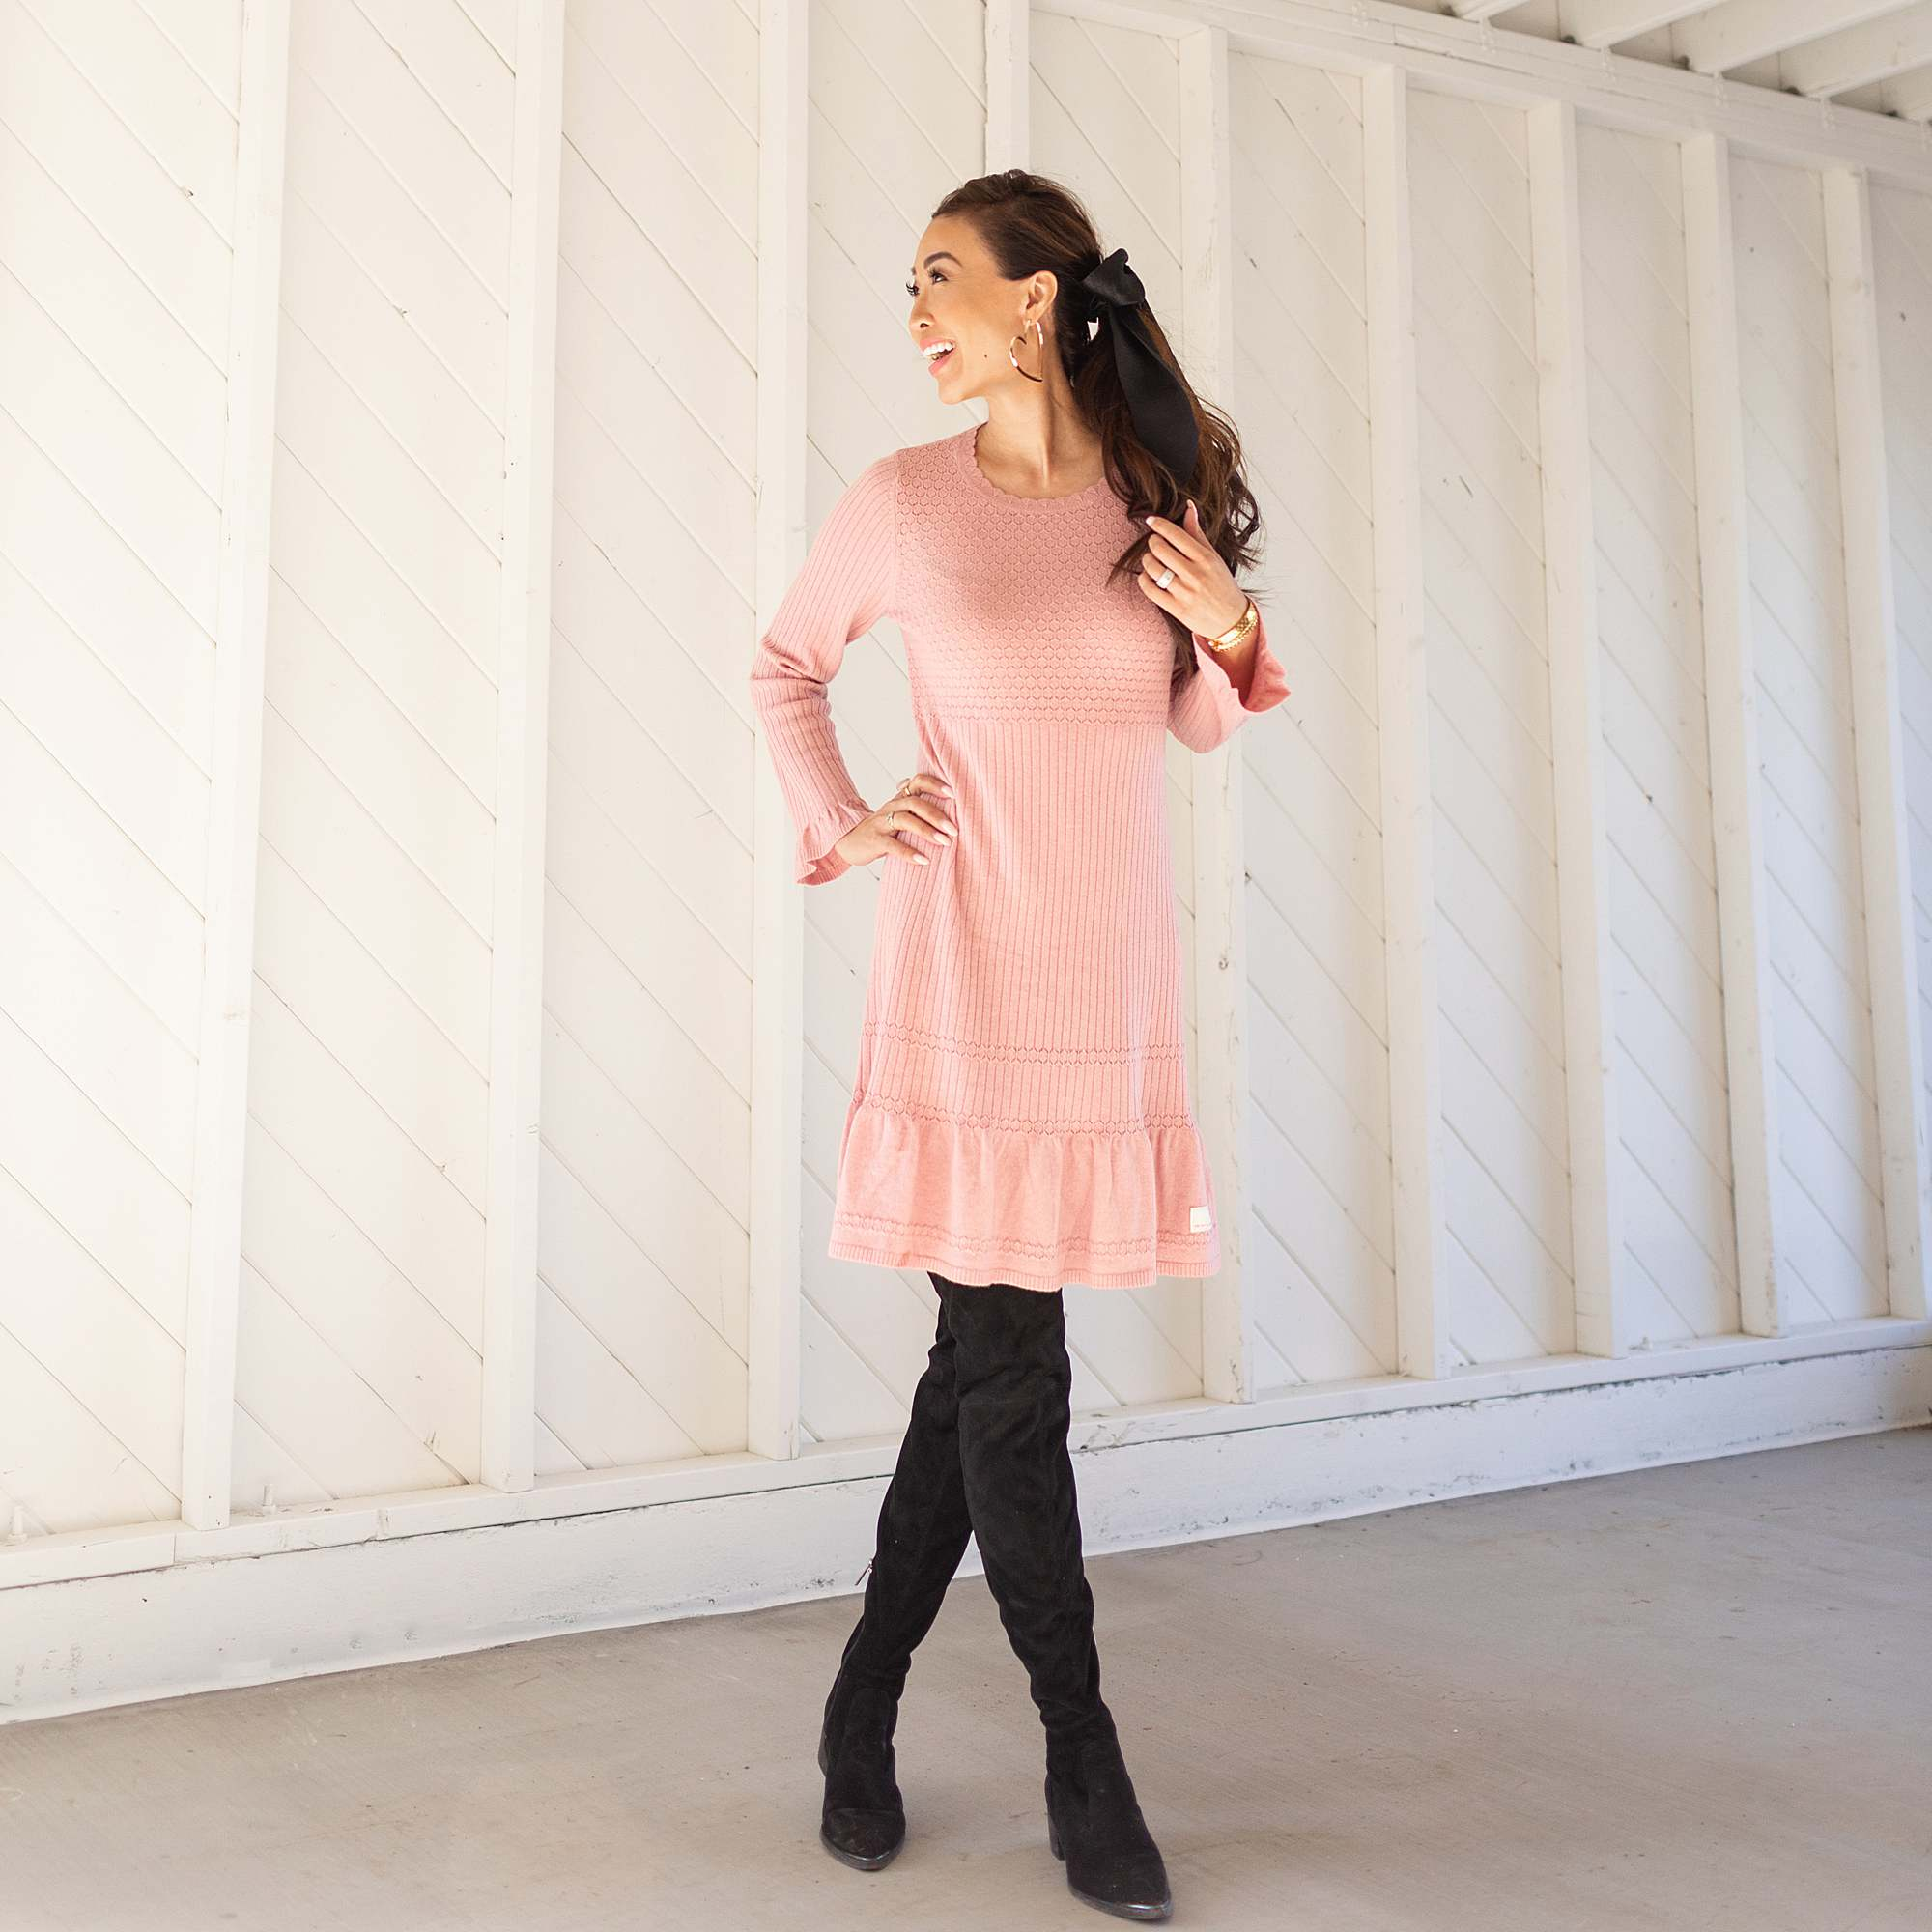 odd Molly pink dress ruffle